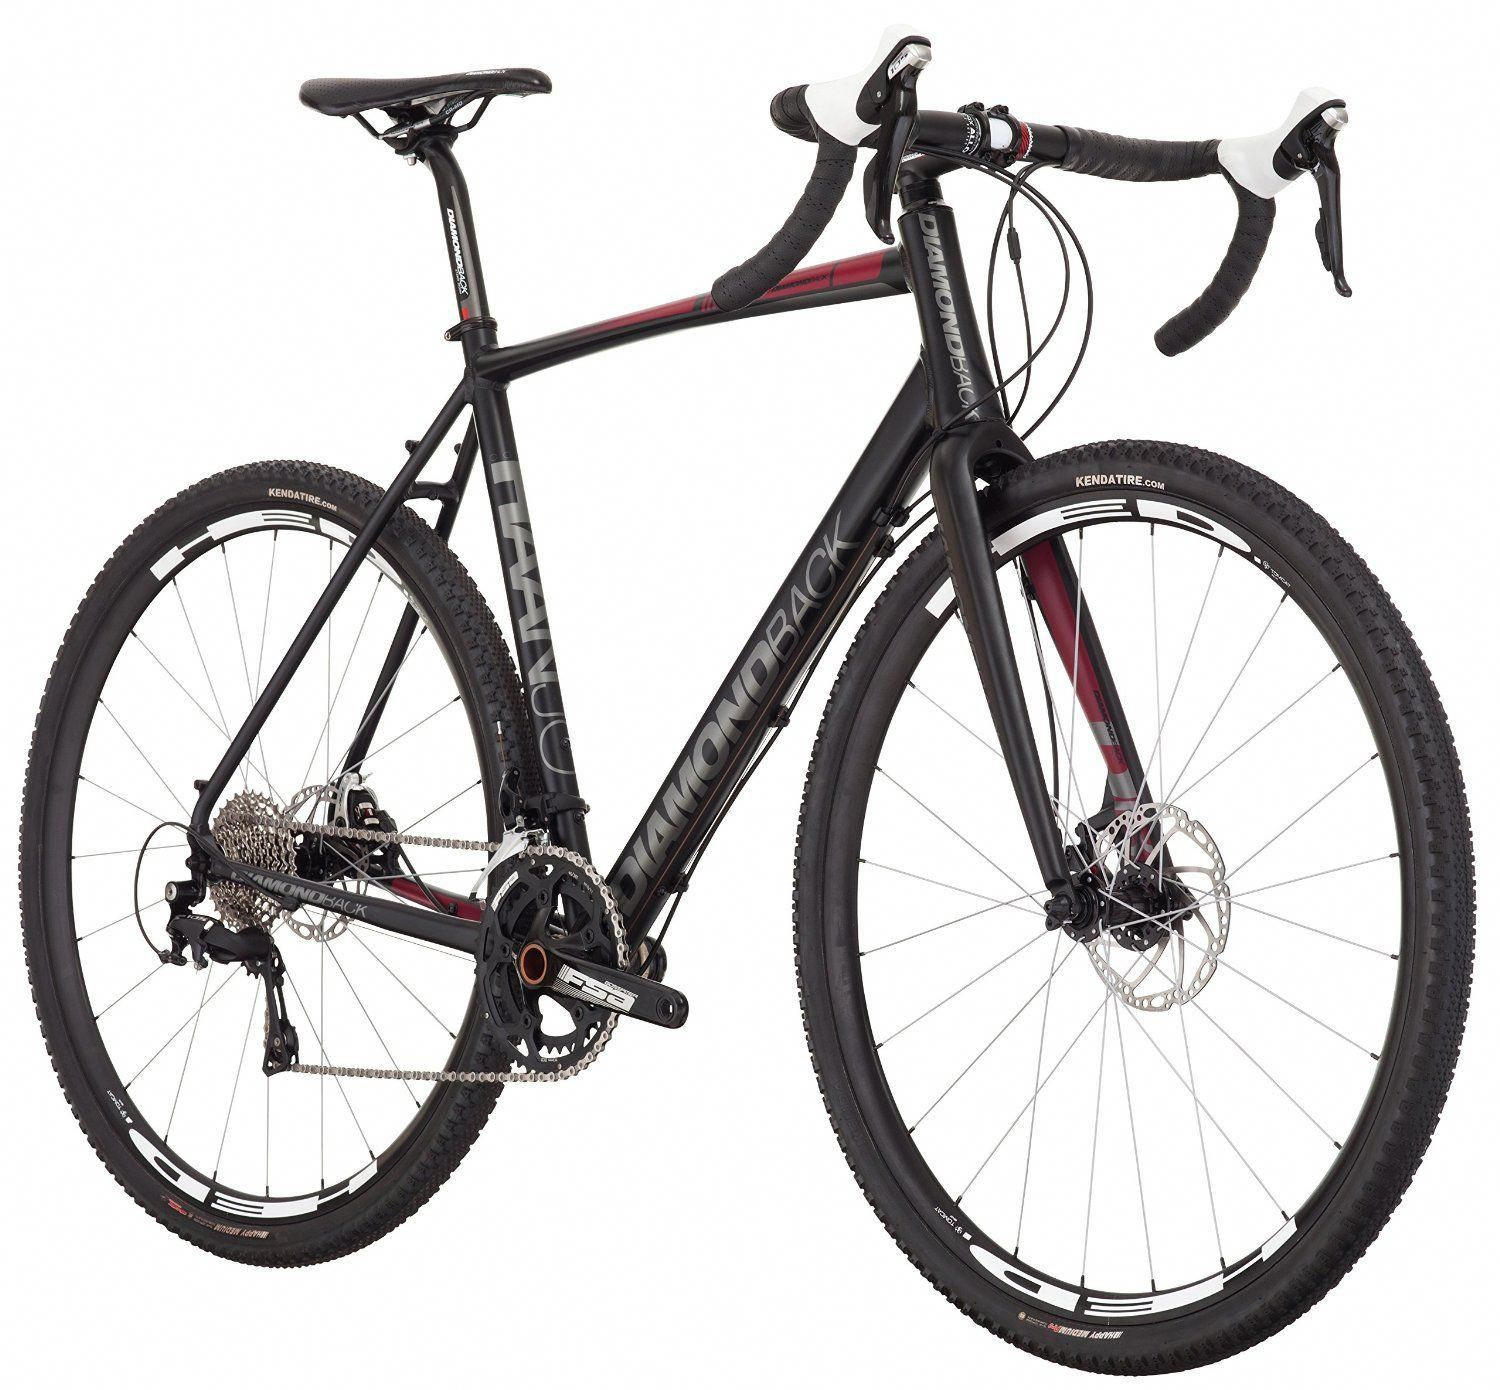 Cool Top 10 Best Cheap Road Bikes In 2016 Reviews Coolbikeaccessories Roadbikeaccessories Bestroadbikes Roadbikegear Be Cheap Road Bikes Bicycle Bike Reviews